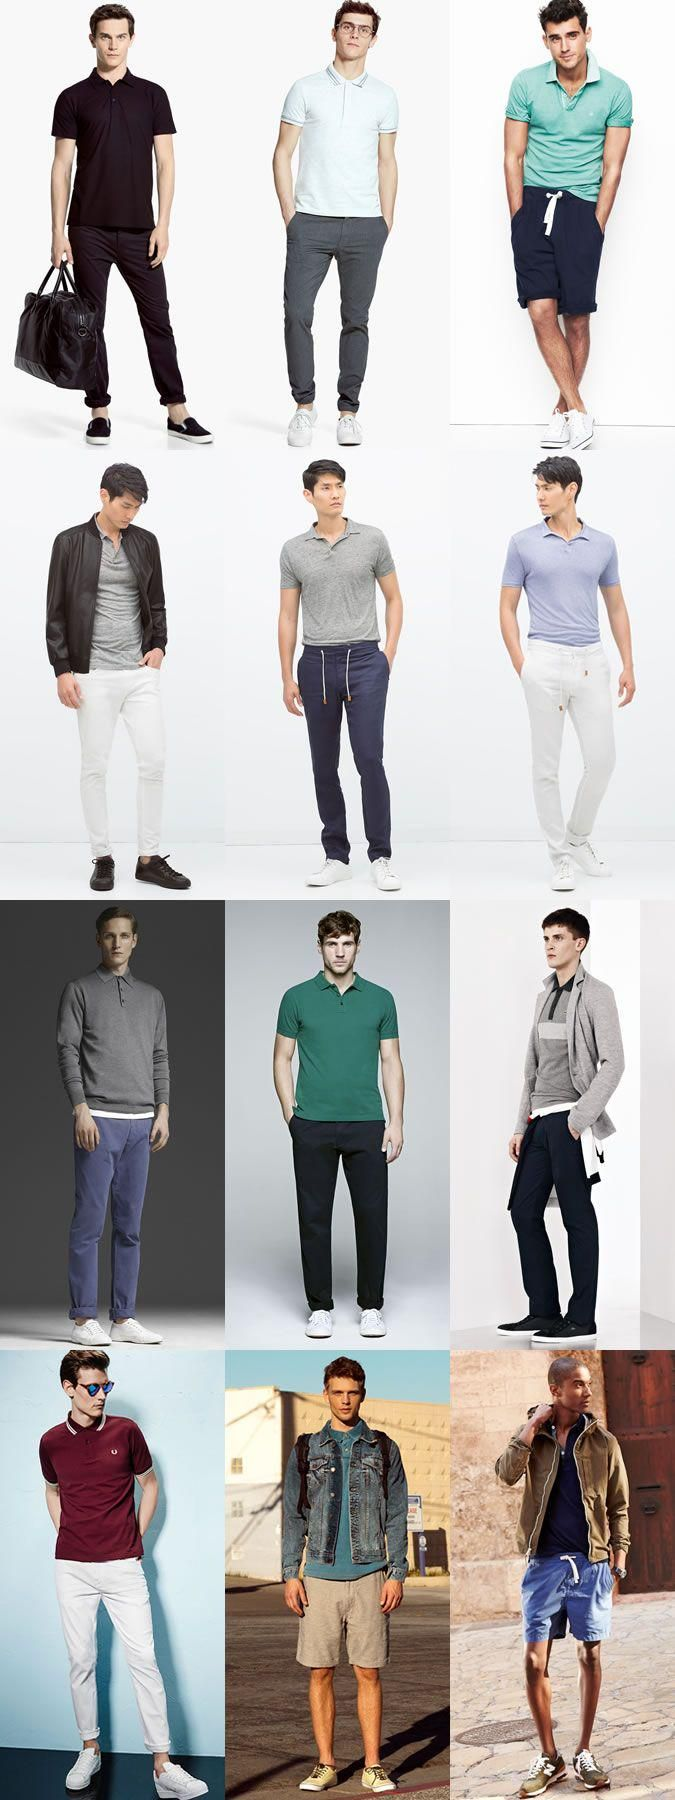 Men's Sports-Inspired Polo Shirt Outfit Inspiration Lookbook